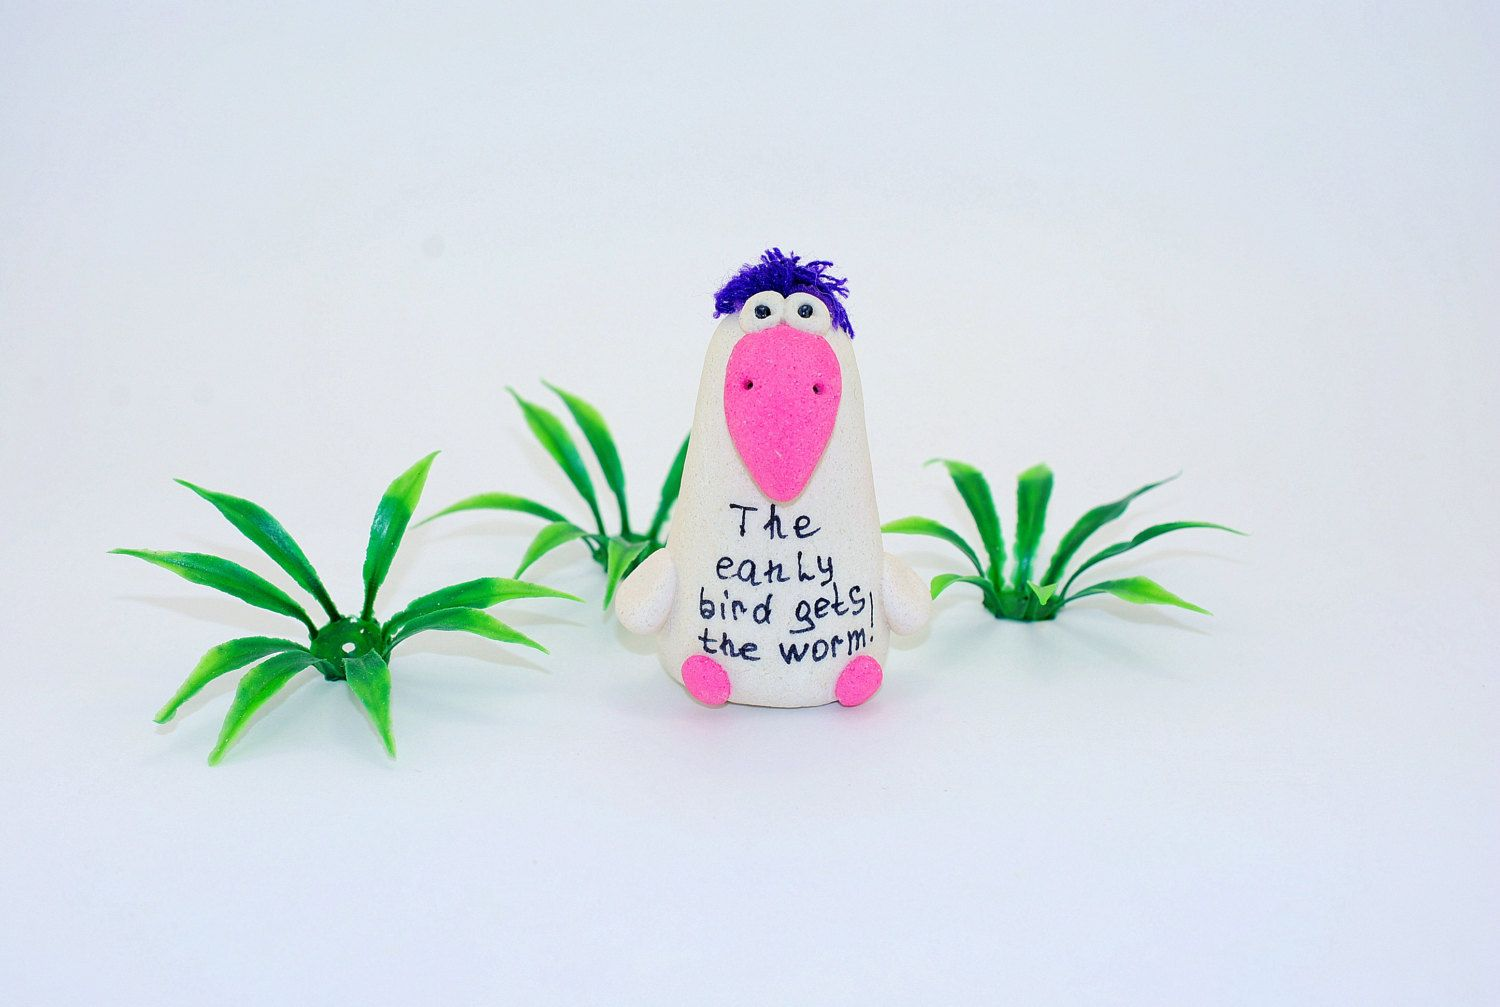 The early bird gets the worm! Birthday gift, Whimsical gifts, Fun gift, Funny Good Luck, Congratulations Gift. by syvenir3dnru on Etsy